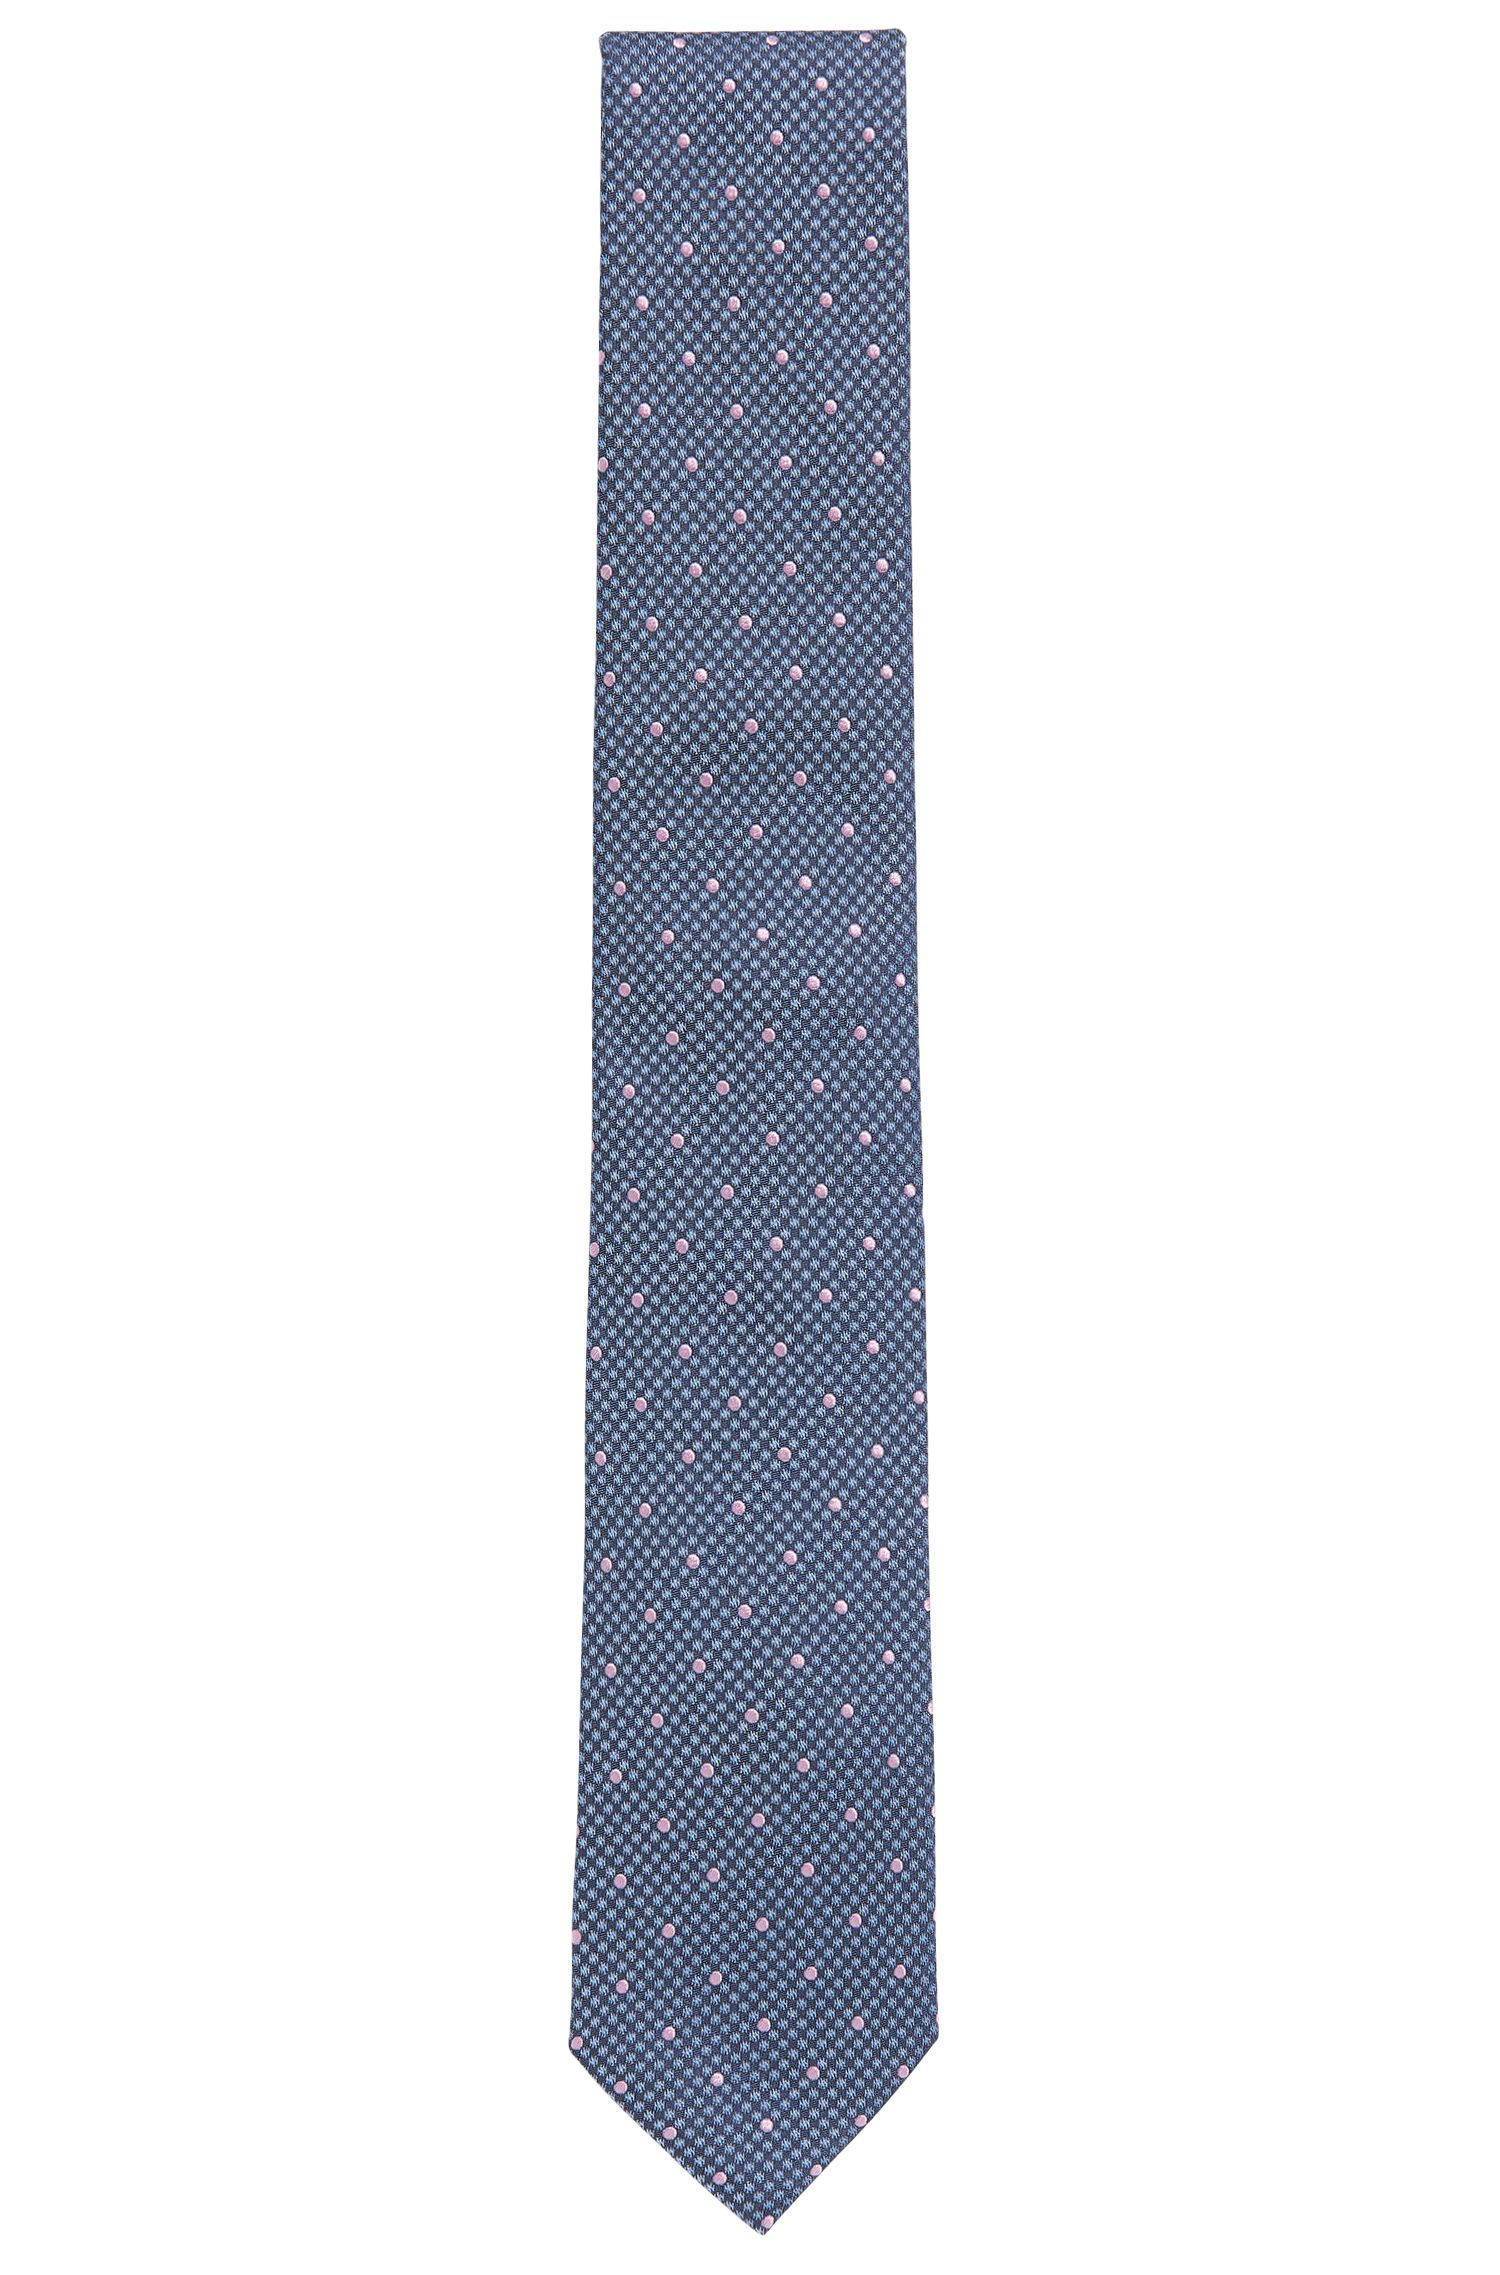 Italian Silk Tie, Dark Blue